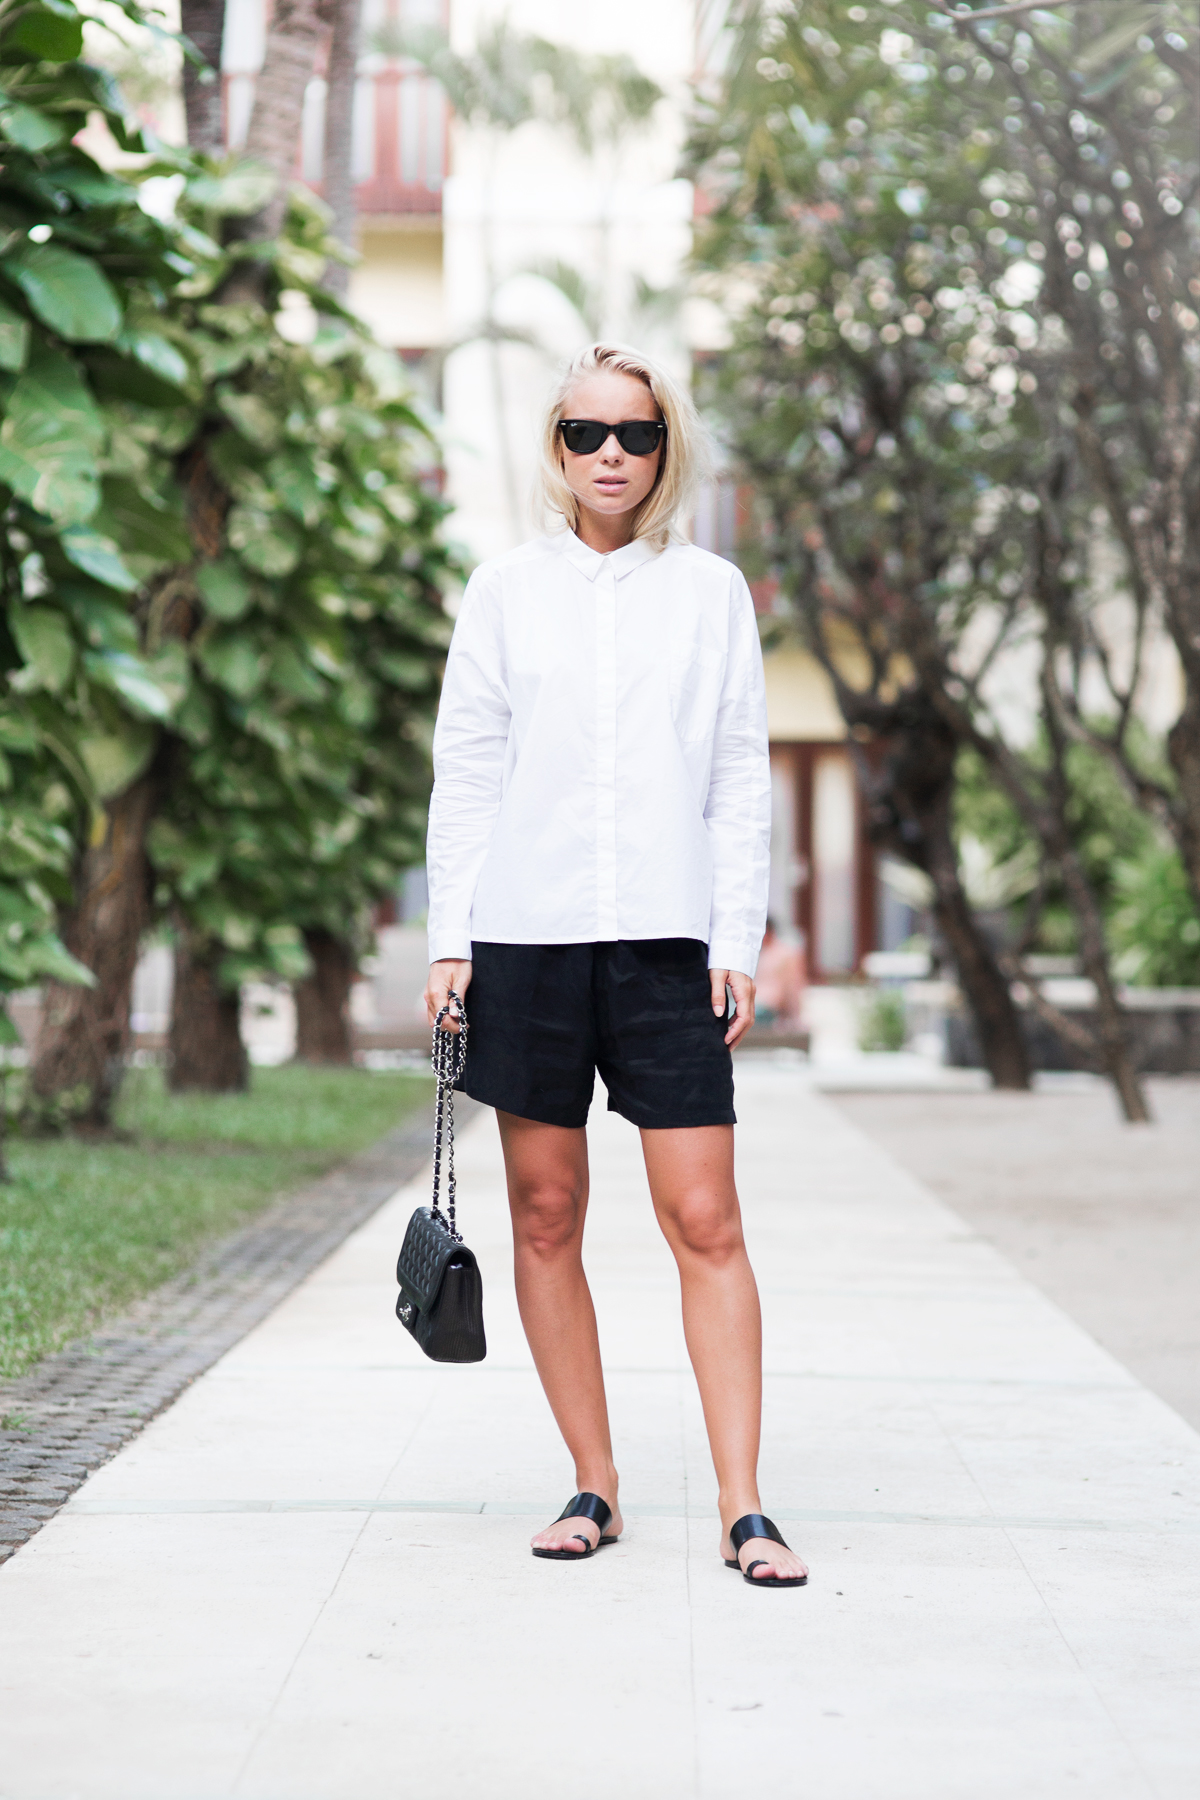 Victoria Tornegren in a white shirt, black shorts, flat sandals and a clutch bag Shirt: Monki, Shorts: Selected Femme, Shoes: ATP, Bag: Channel